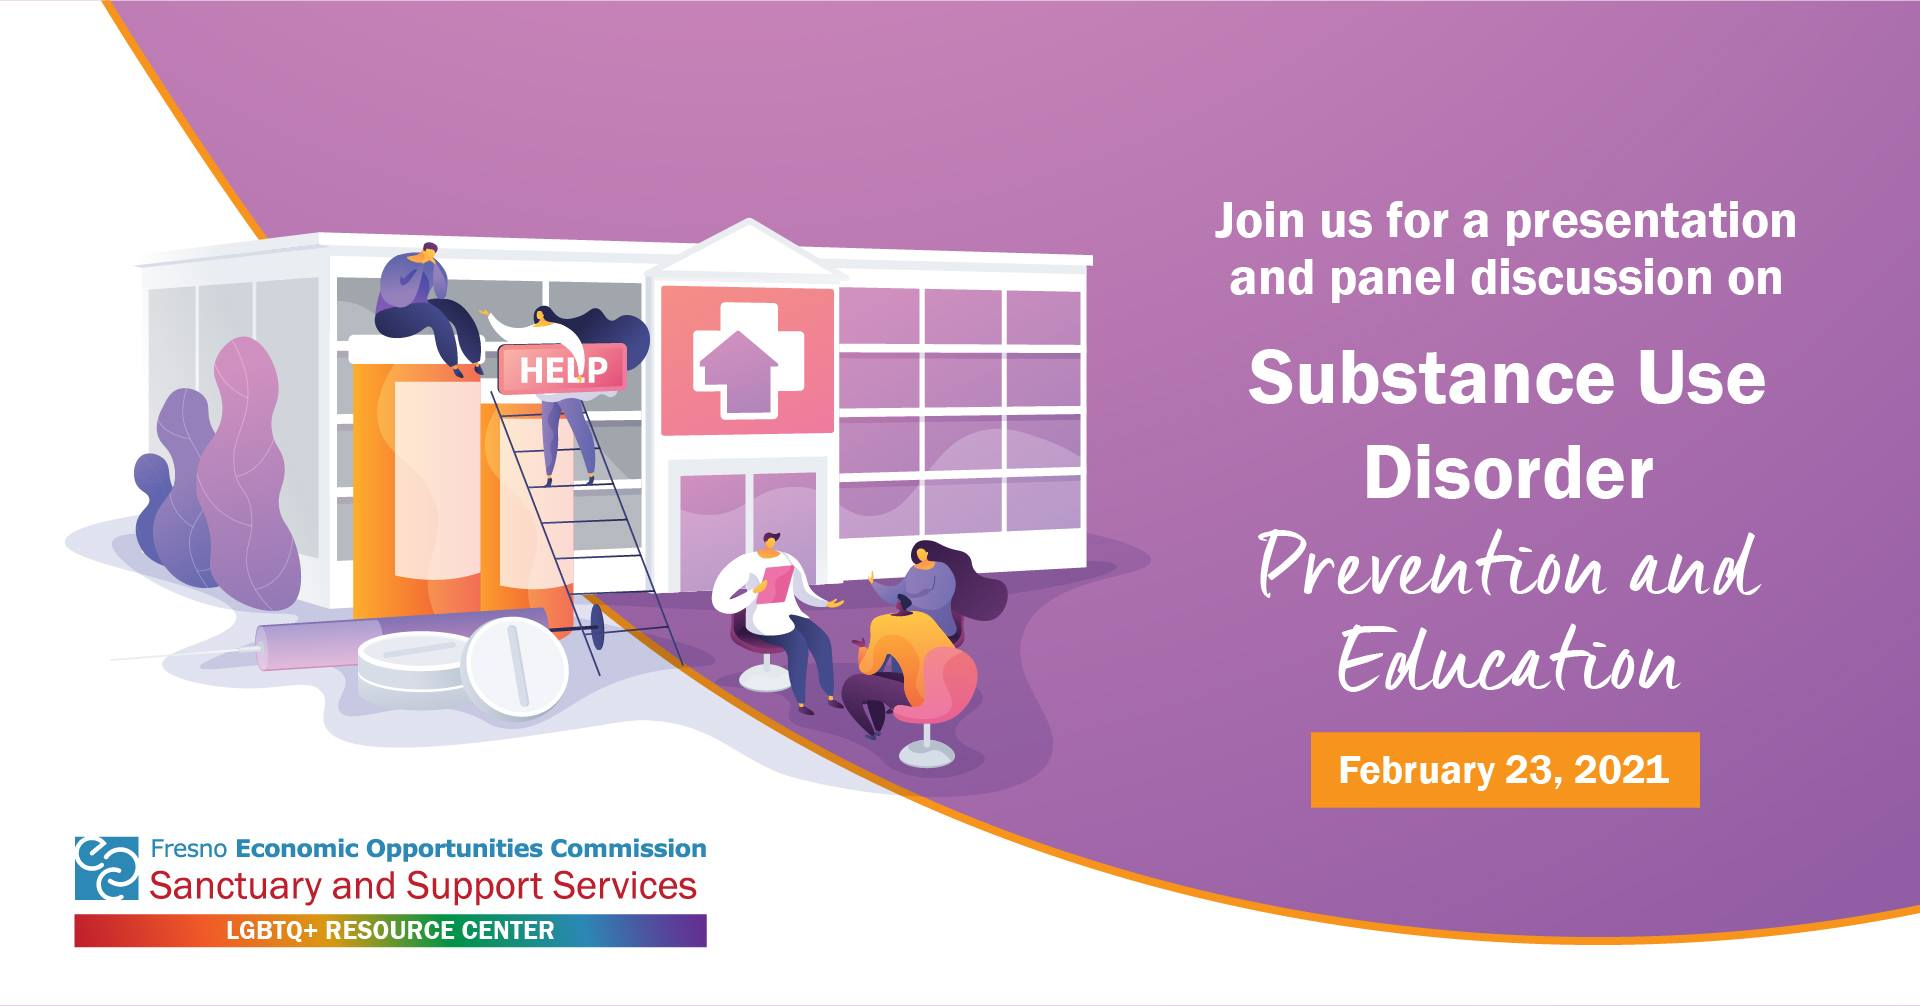 Second Substance Use Disorder Prevention & Education on March 23rd